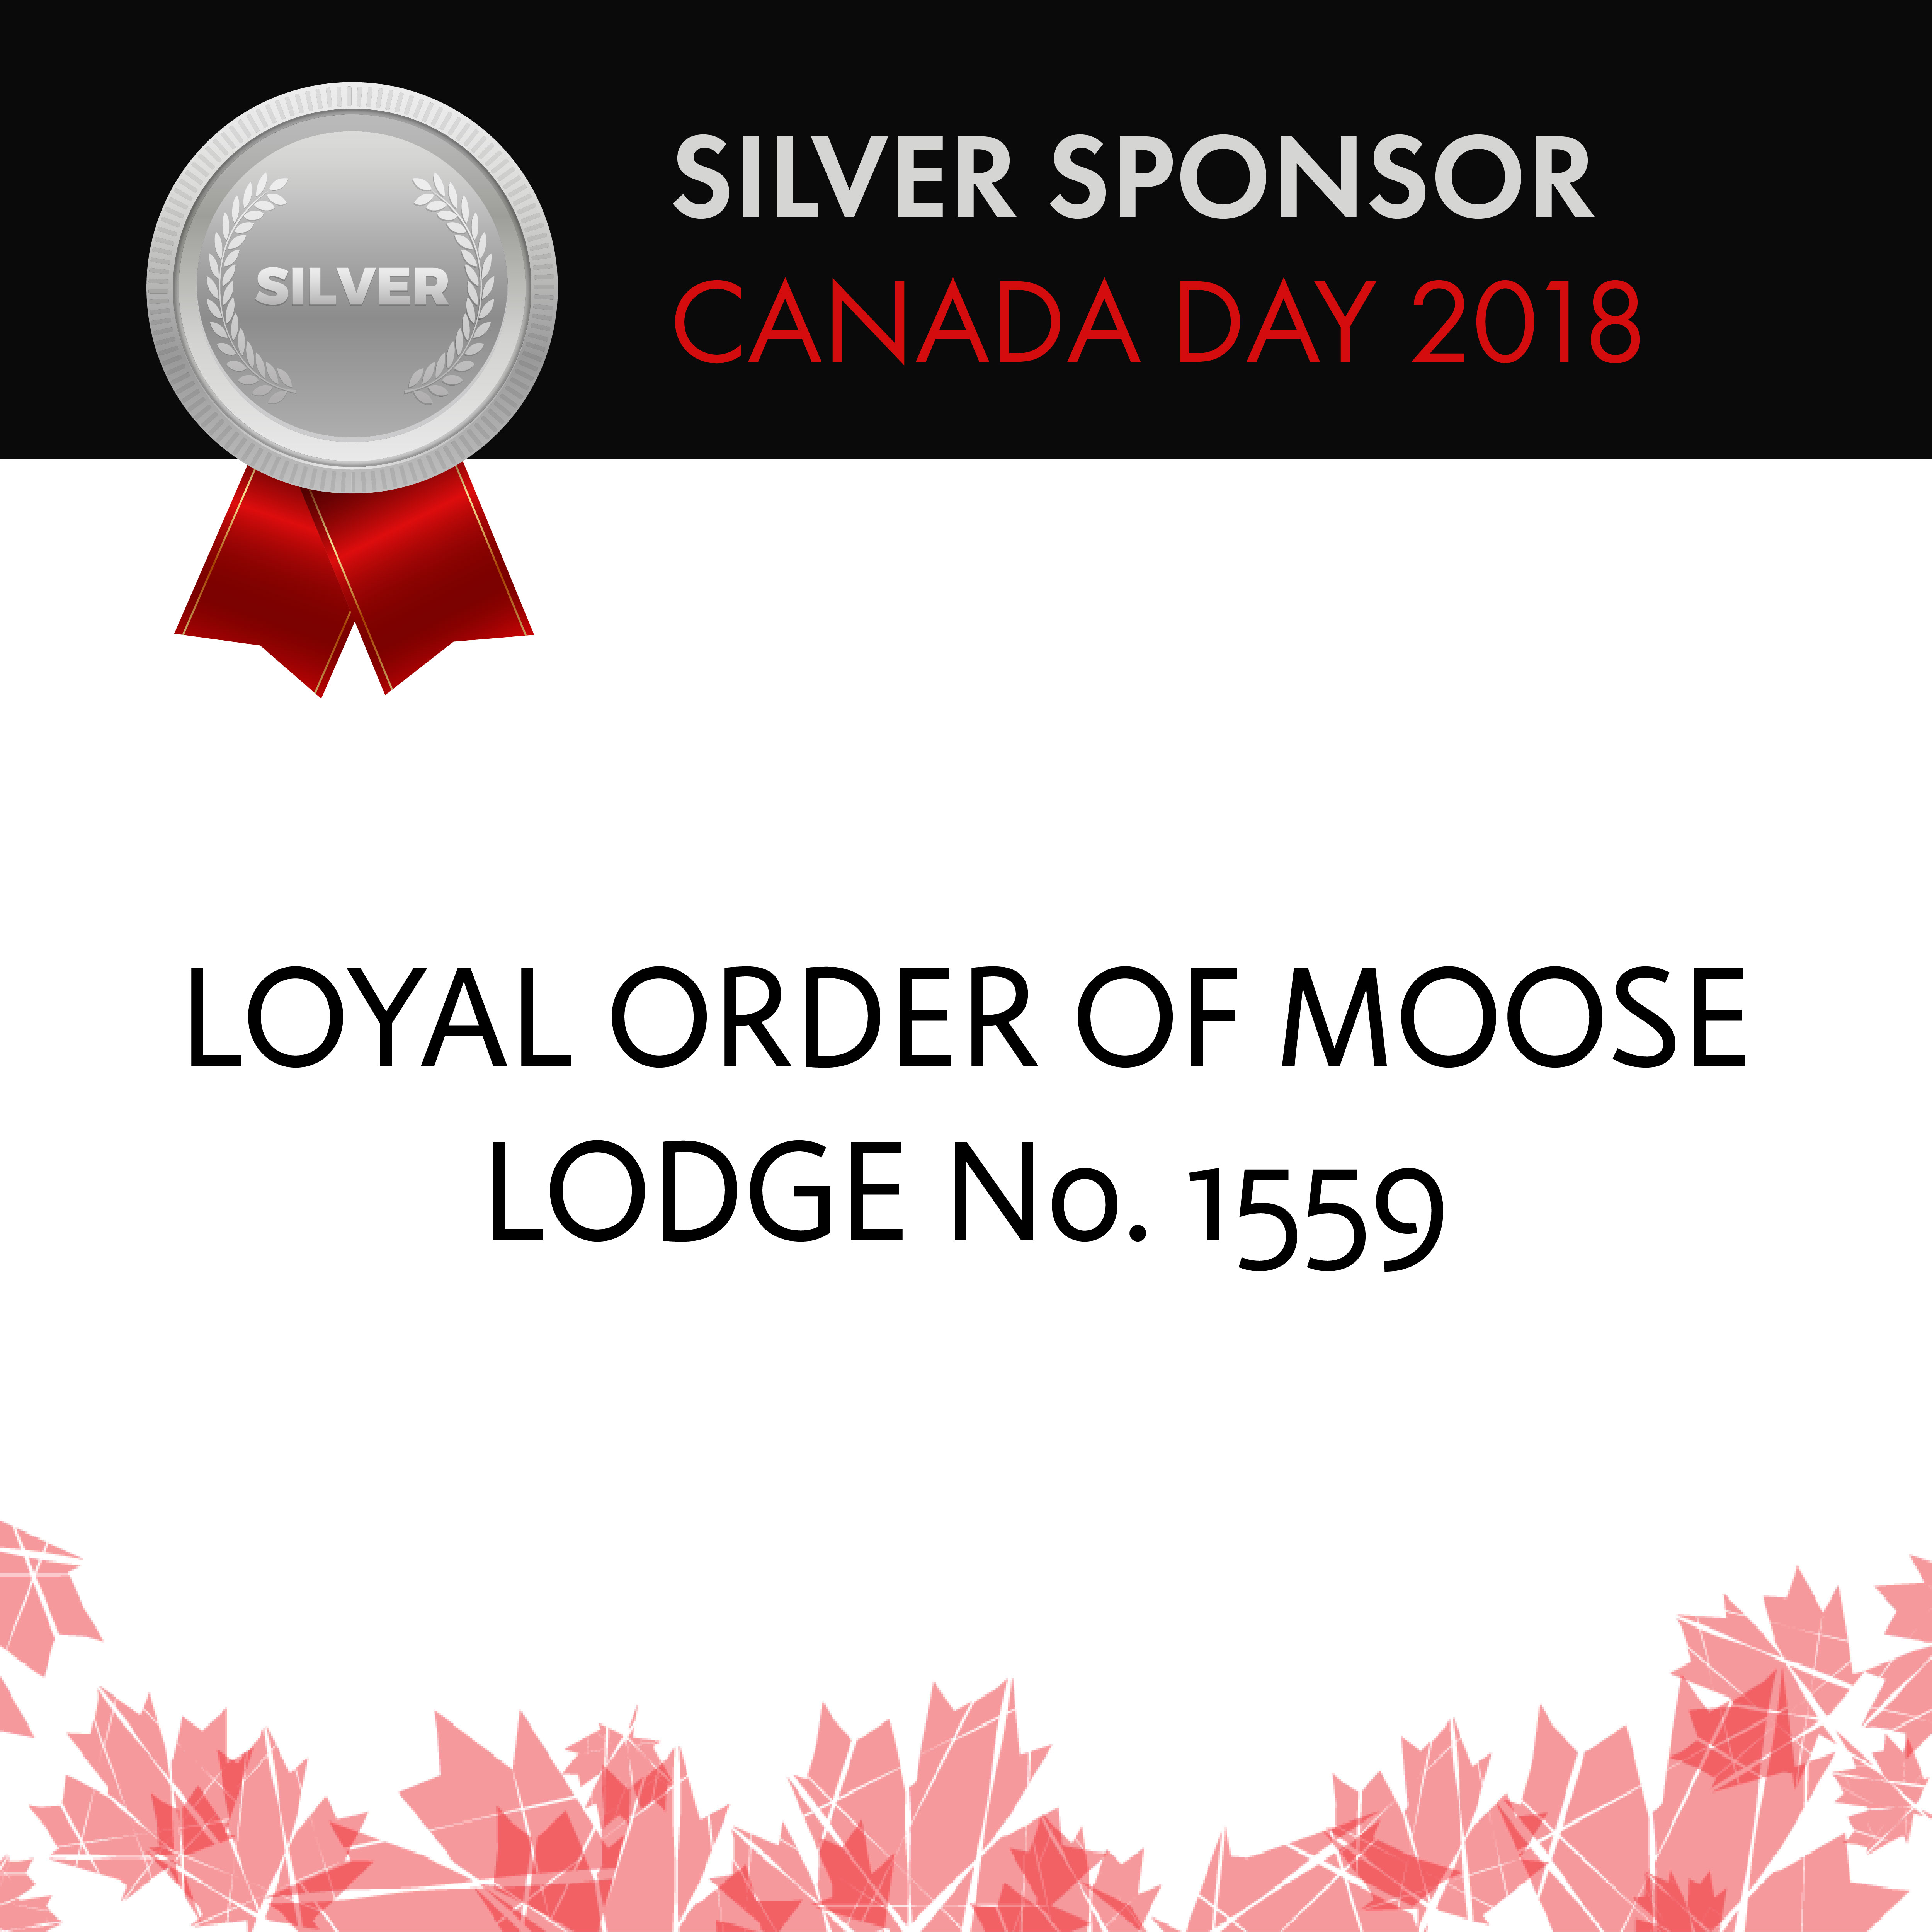 Silver Sponsor Ad - Loyal Order of Moose-01.jpg